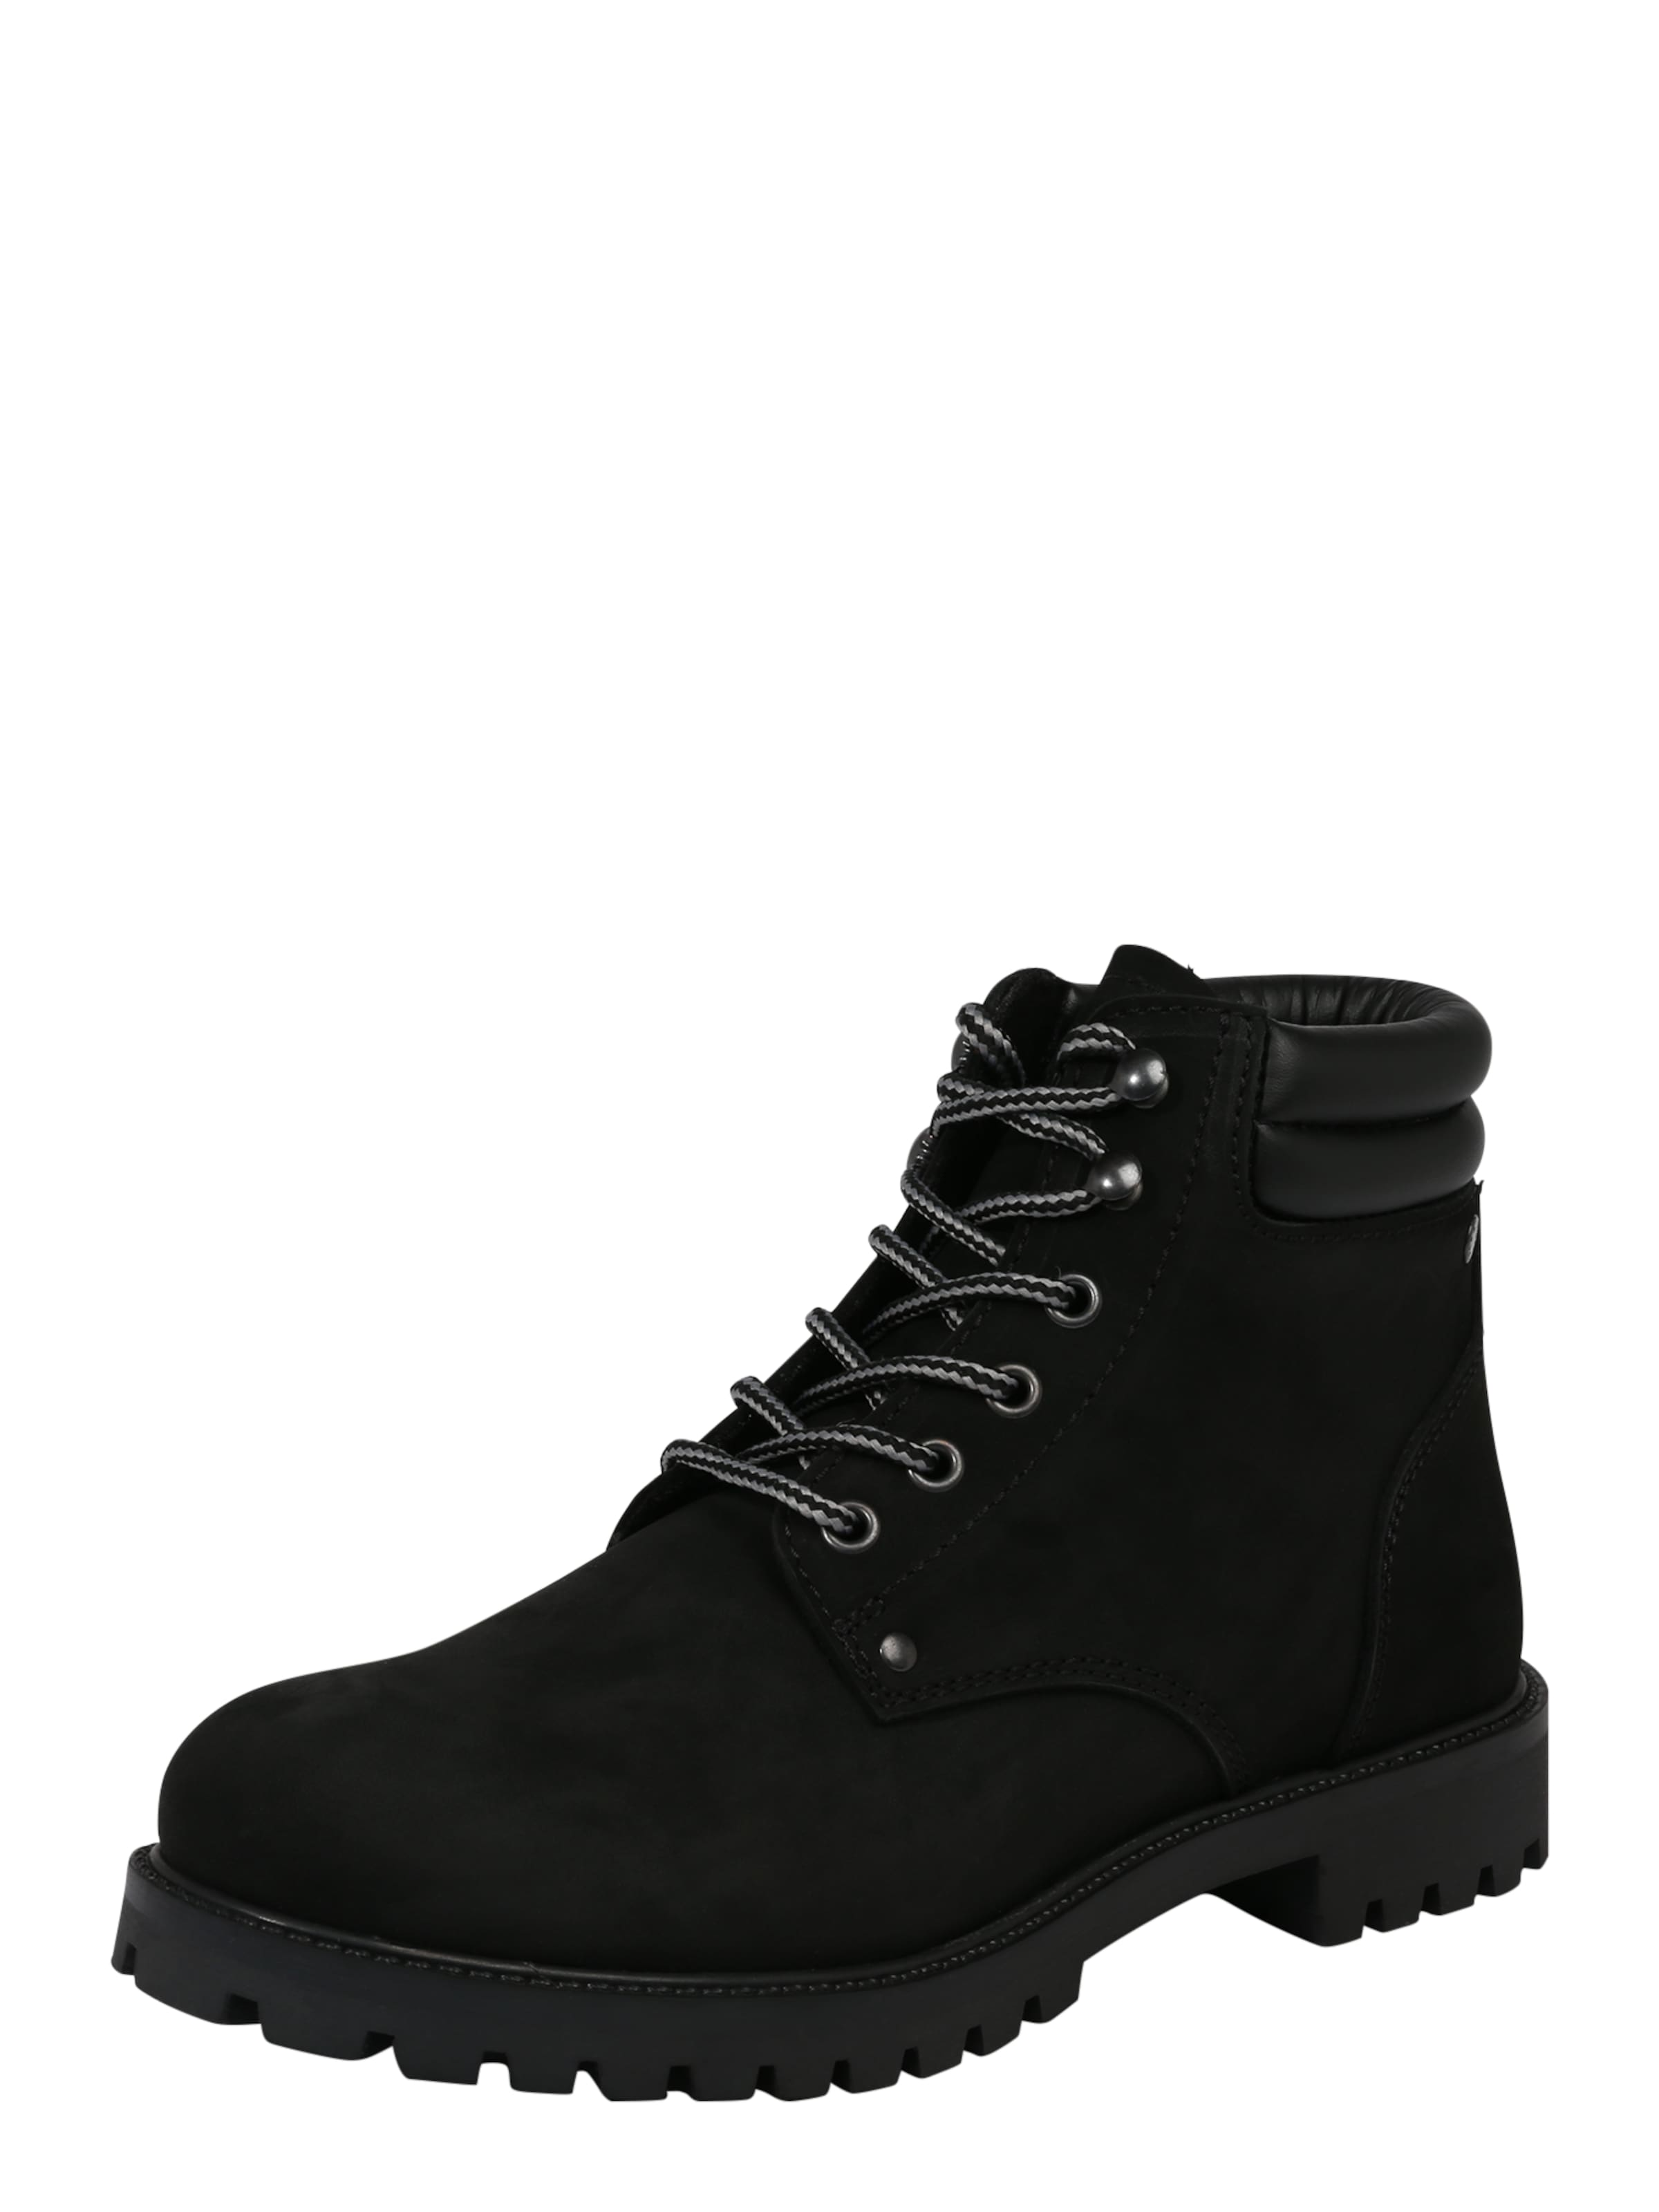 In Schwarz Jackamp; Jones Stiefel 'jfwstoke' KJcT1lF3